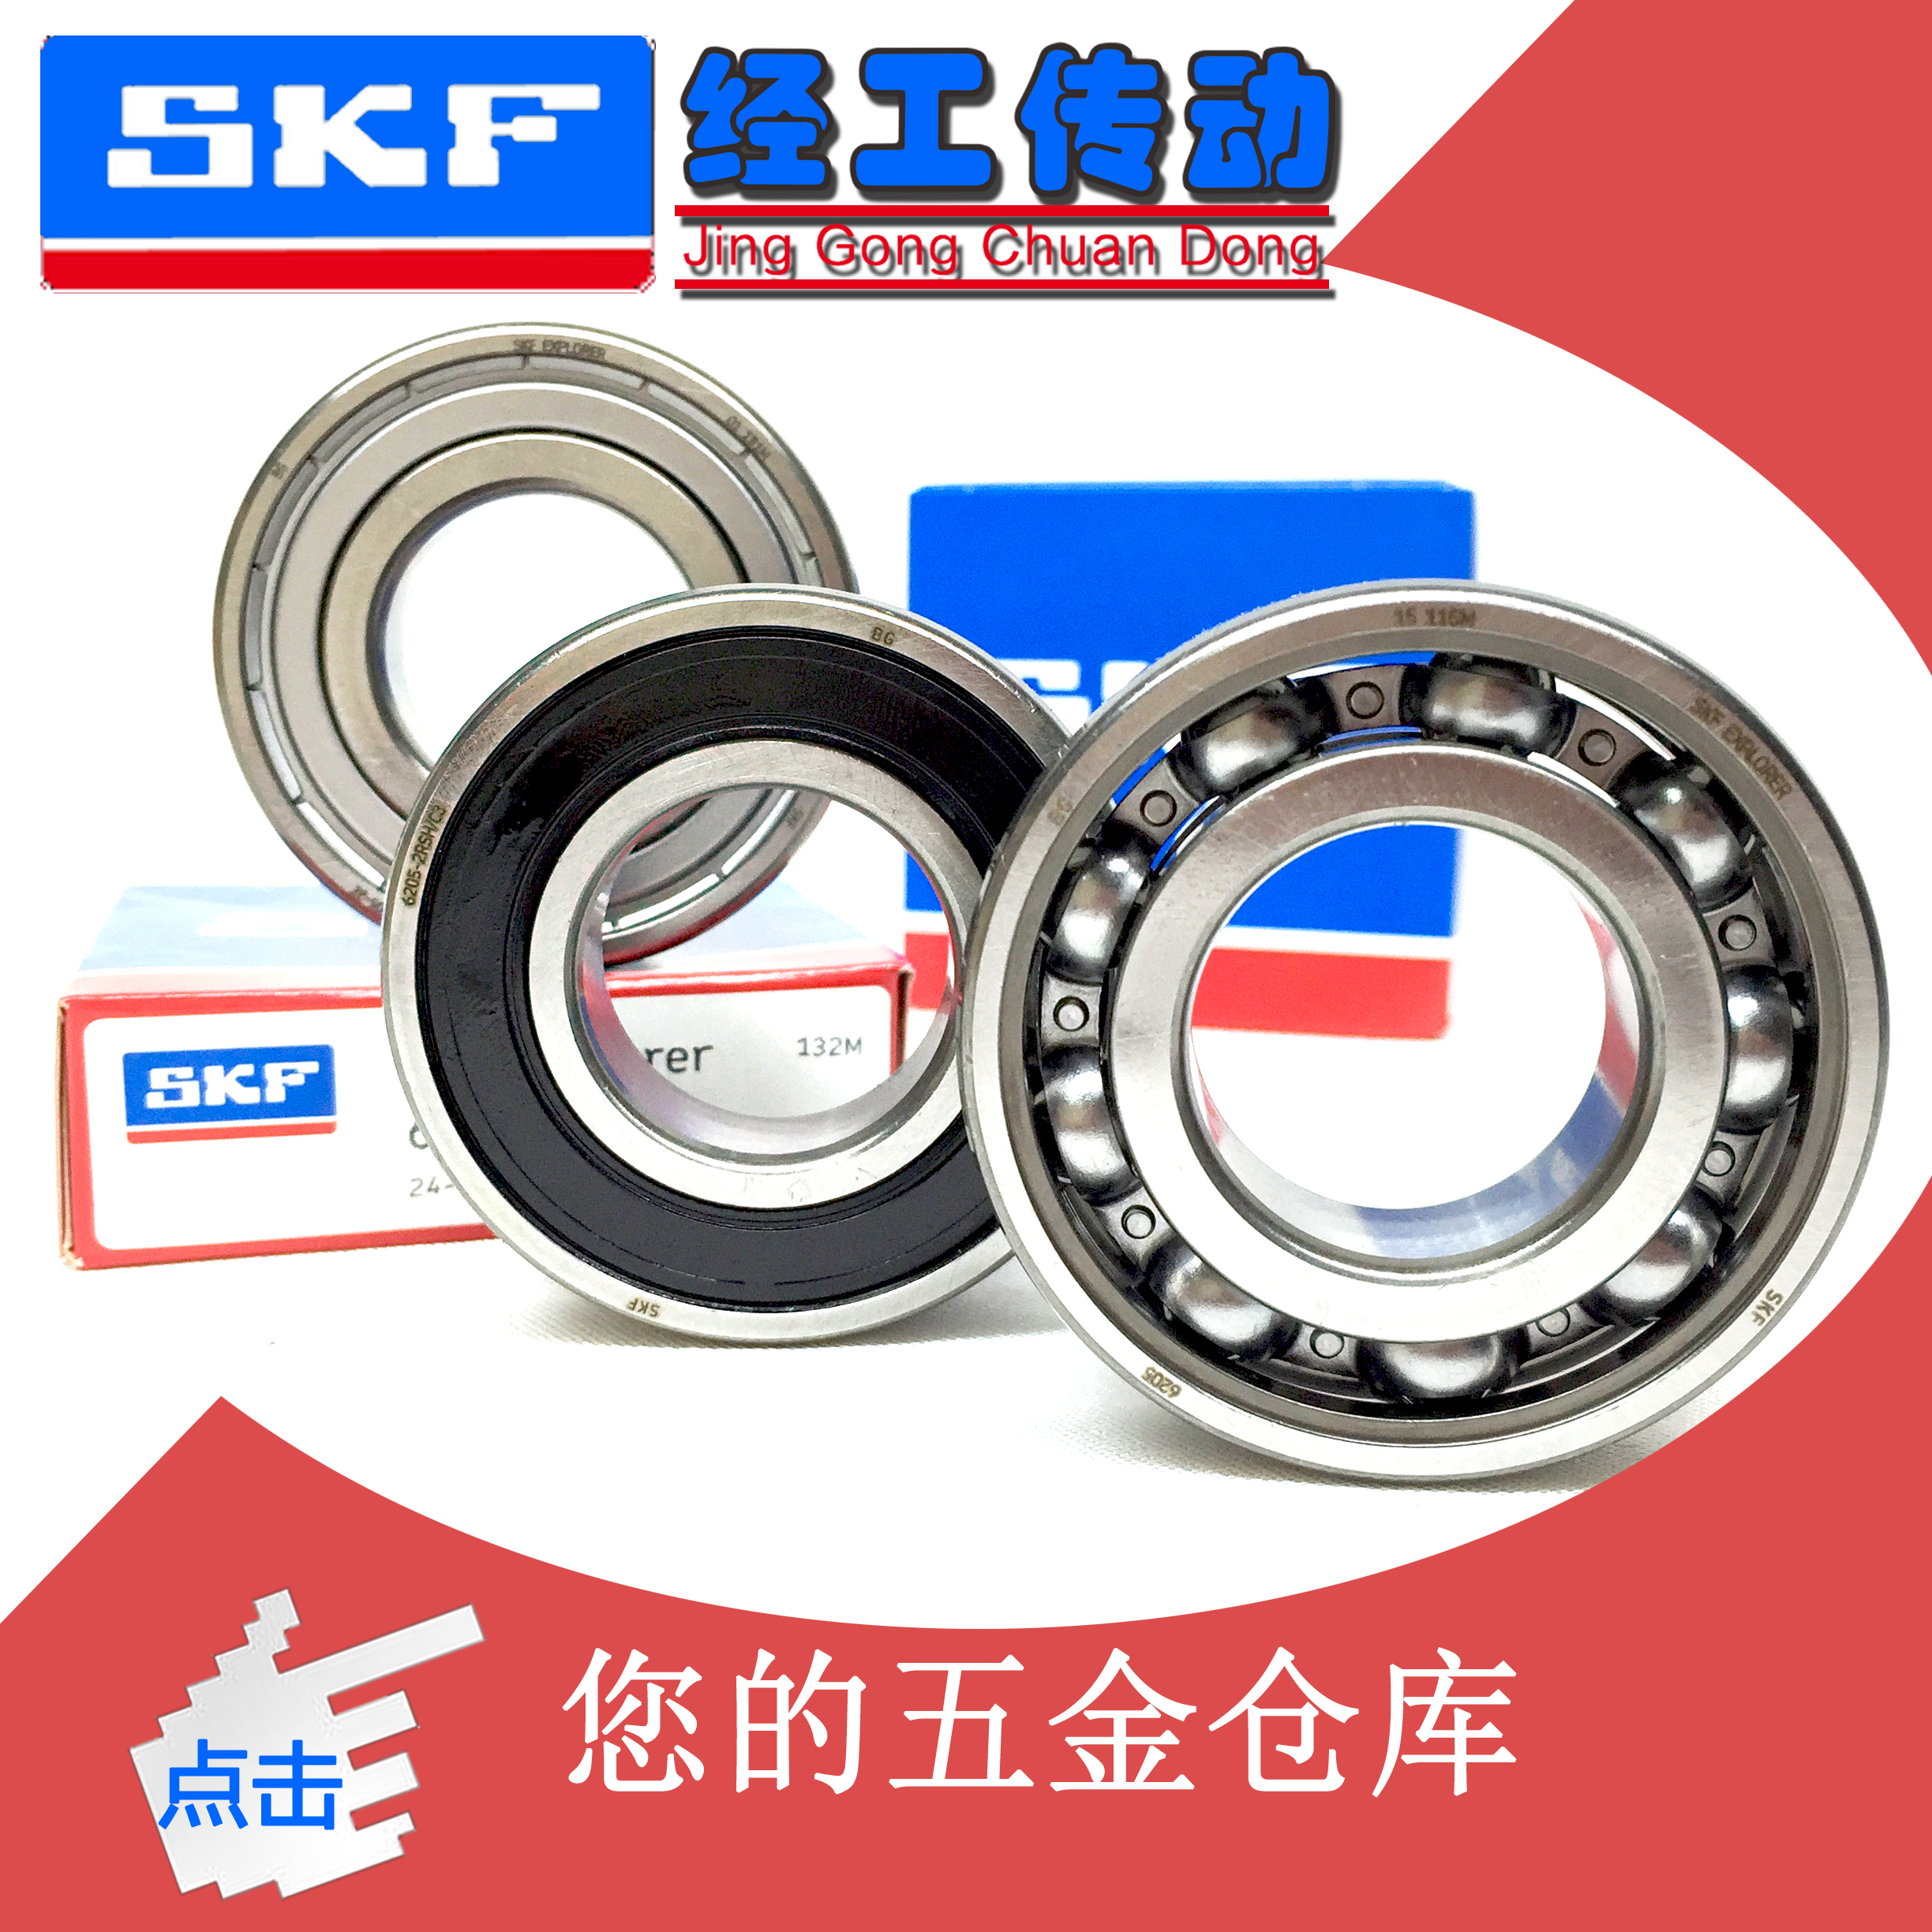 Skf bearings imported from sweden skf genuine original 6021 z 2z 2rs1 c3 rs 831 complotypes